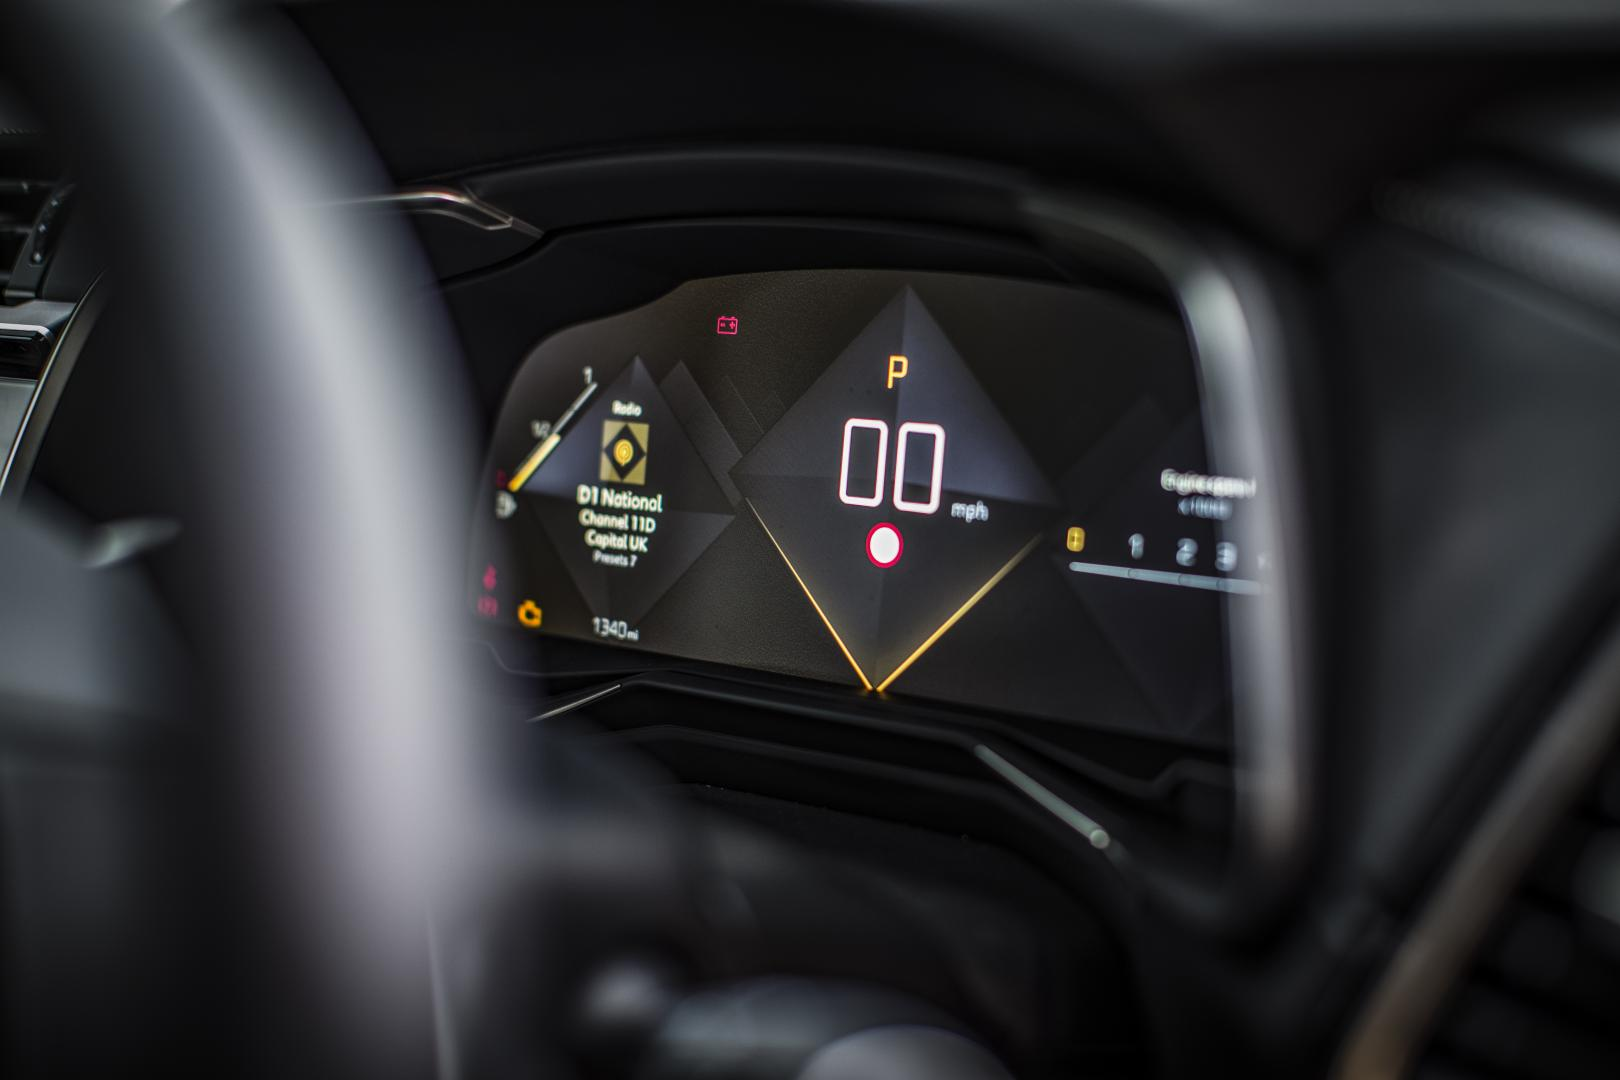 Volvo XC40 D4 AWD First Edition display (2018)